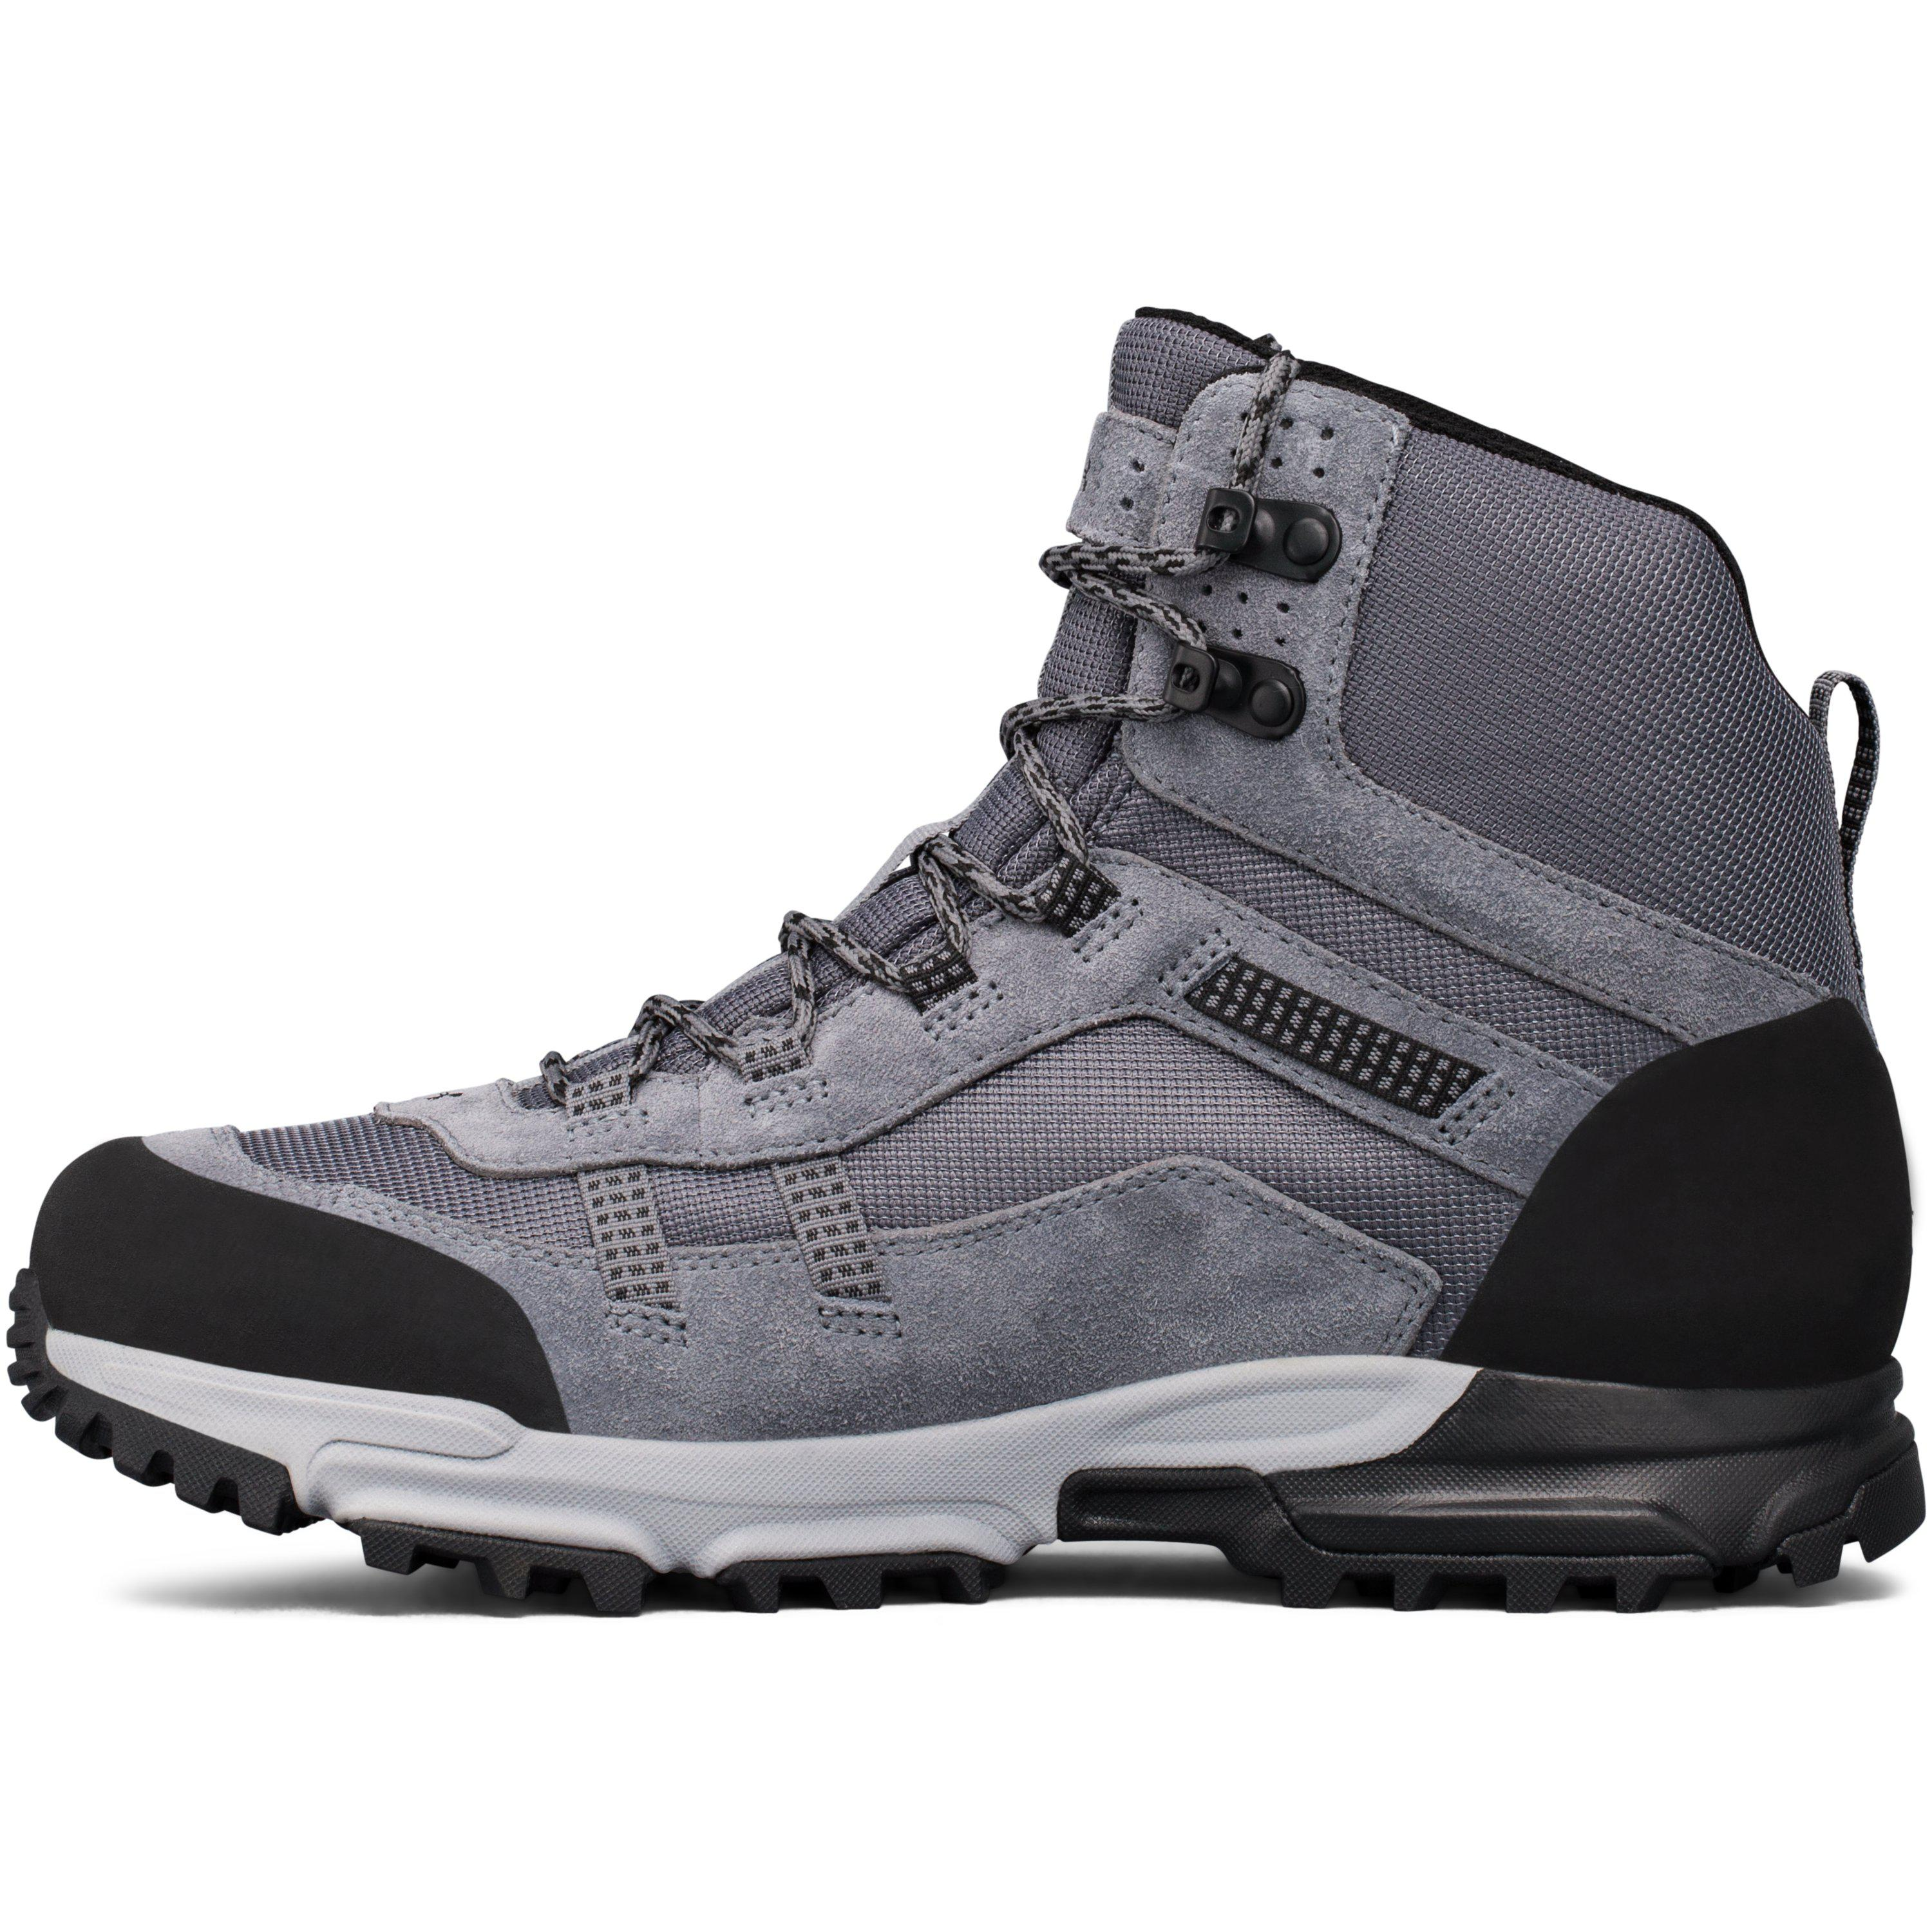 ee8ee3a6c7b Under Armour Gray Men's Ua Post Canyon Mid Waterproof Hiking Boots for men